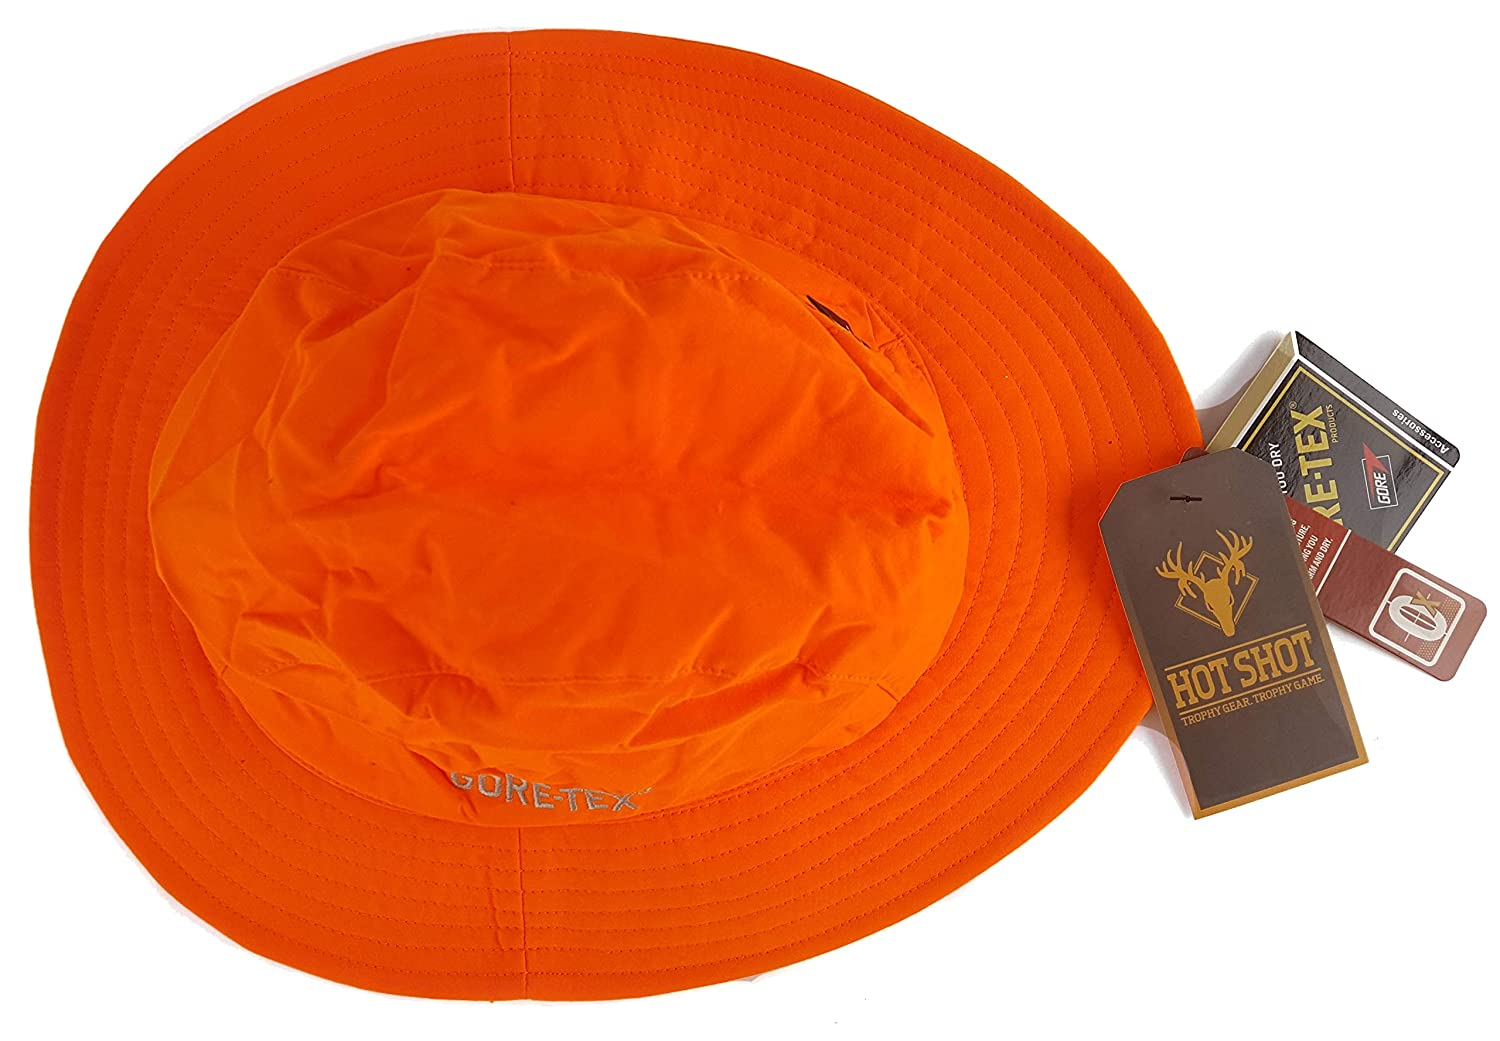 f005b84420651 Gore-Tex Blaze Orange Boonie Hat Size M L